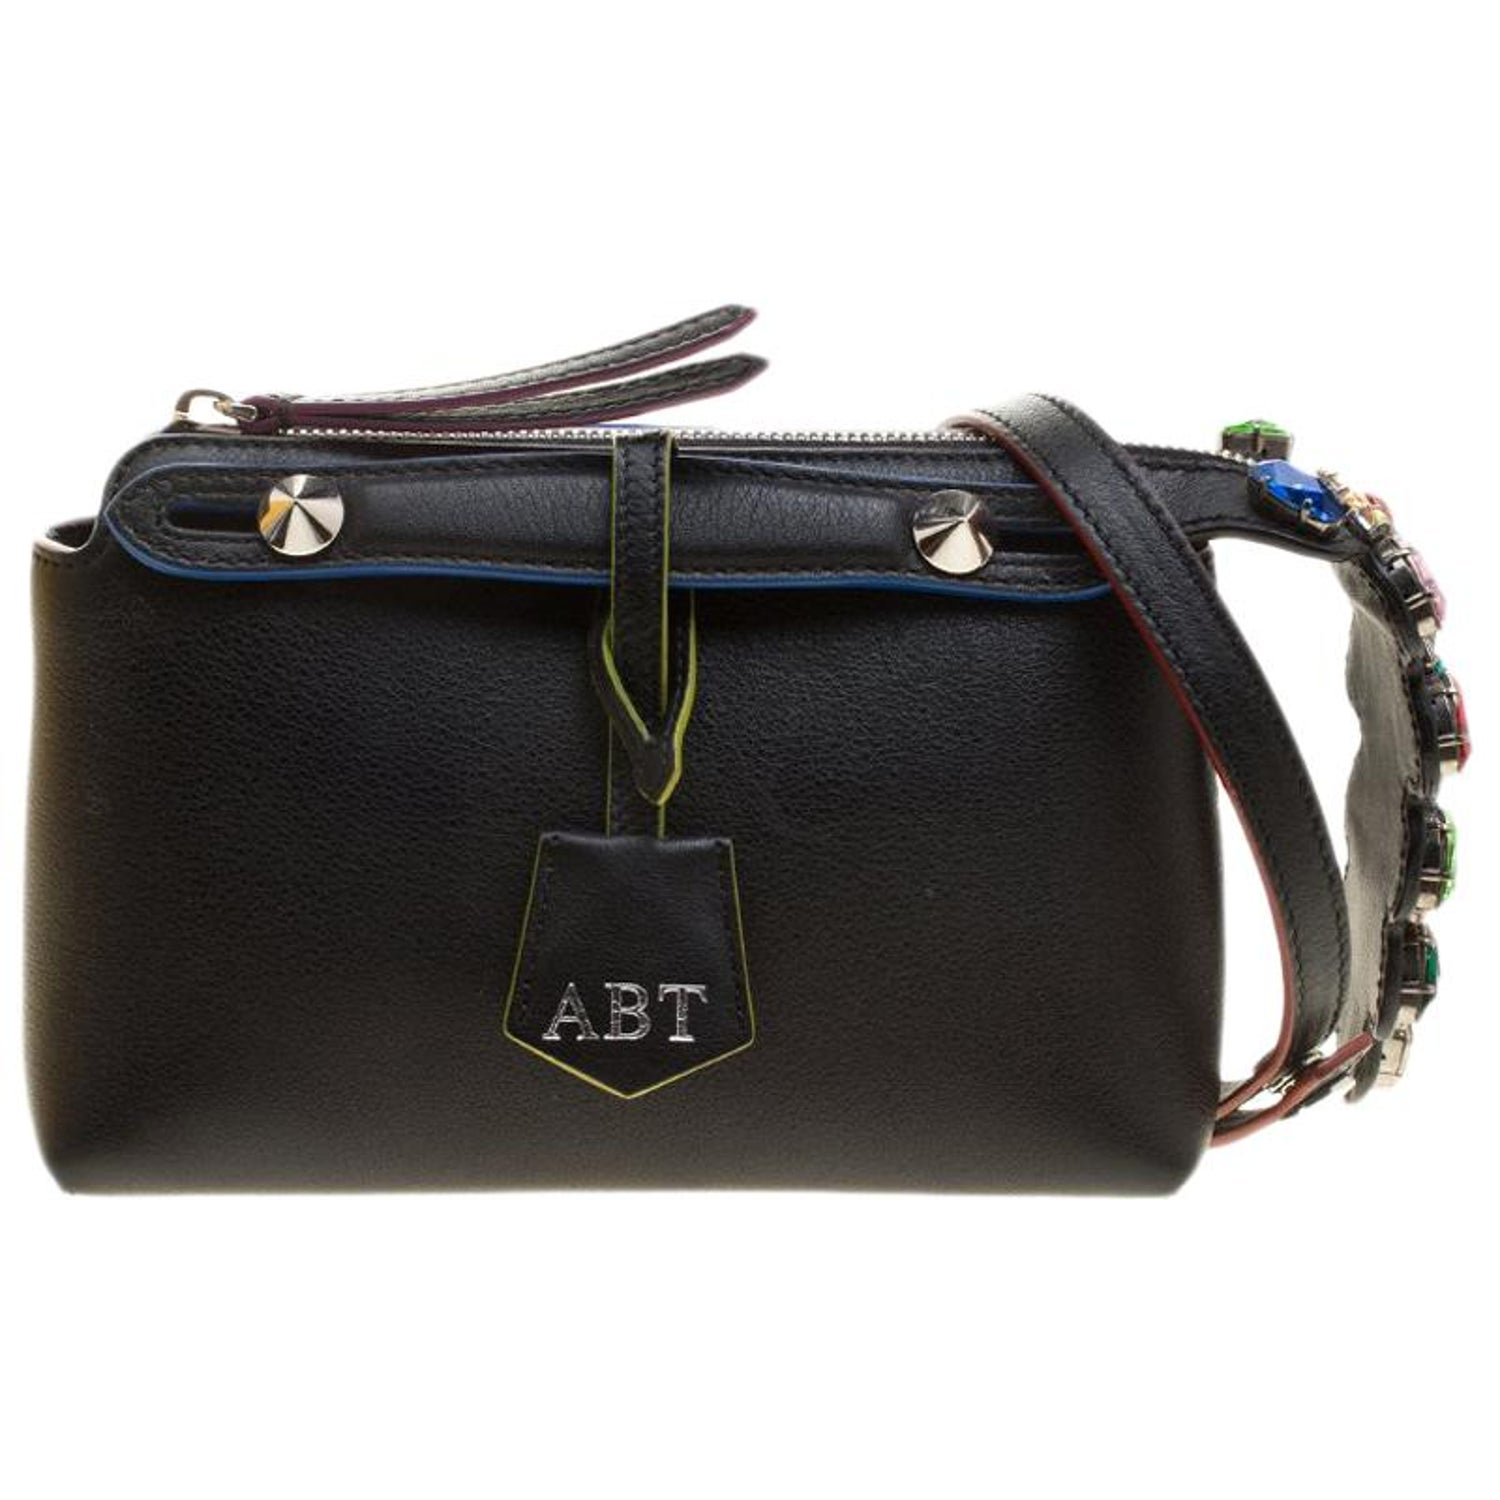 05dd2d94cc Fendi Black Leather Mini By The Way Crossbody Bag For Sale at 1stdibs